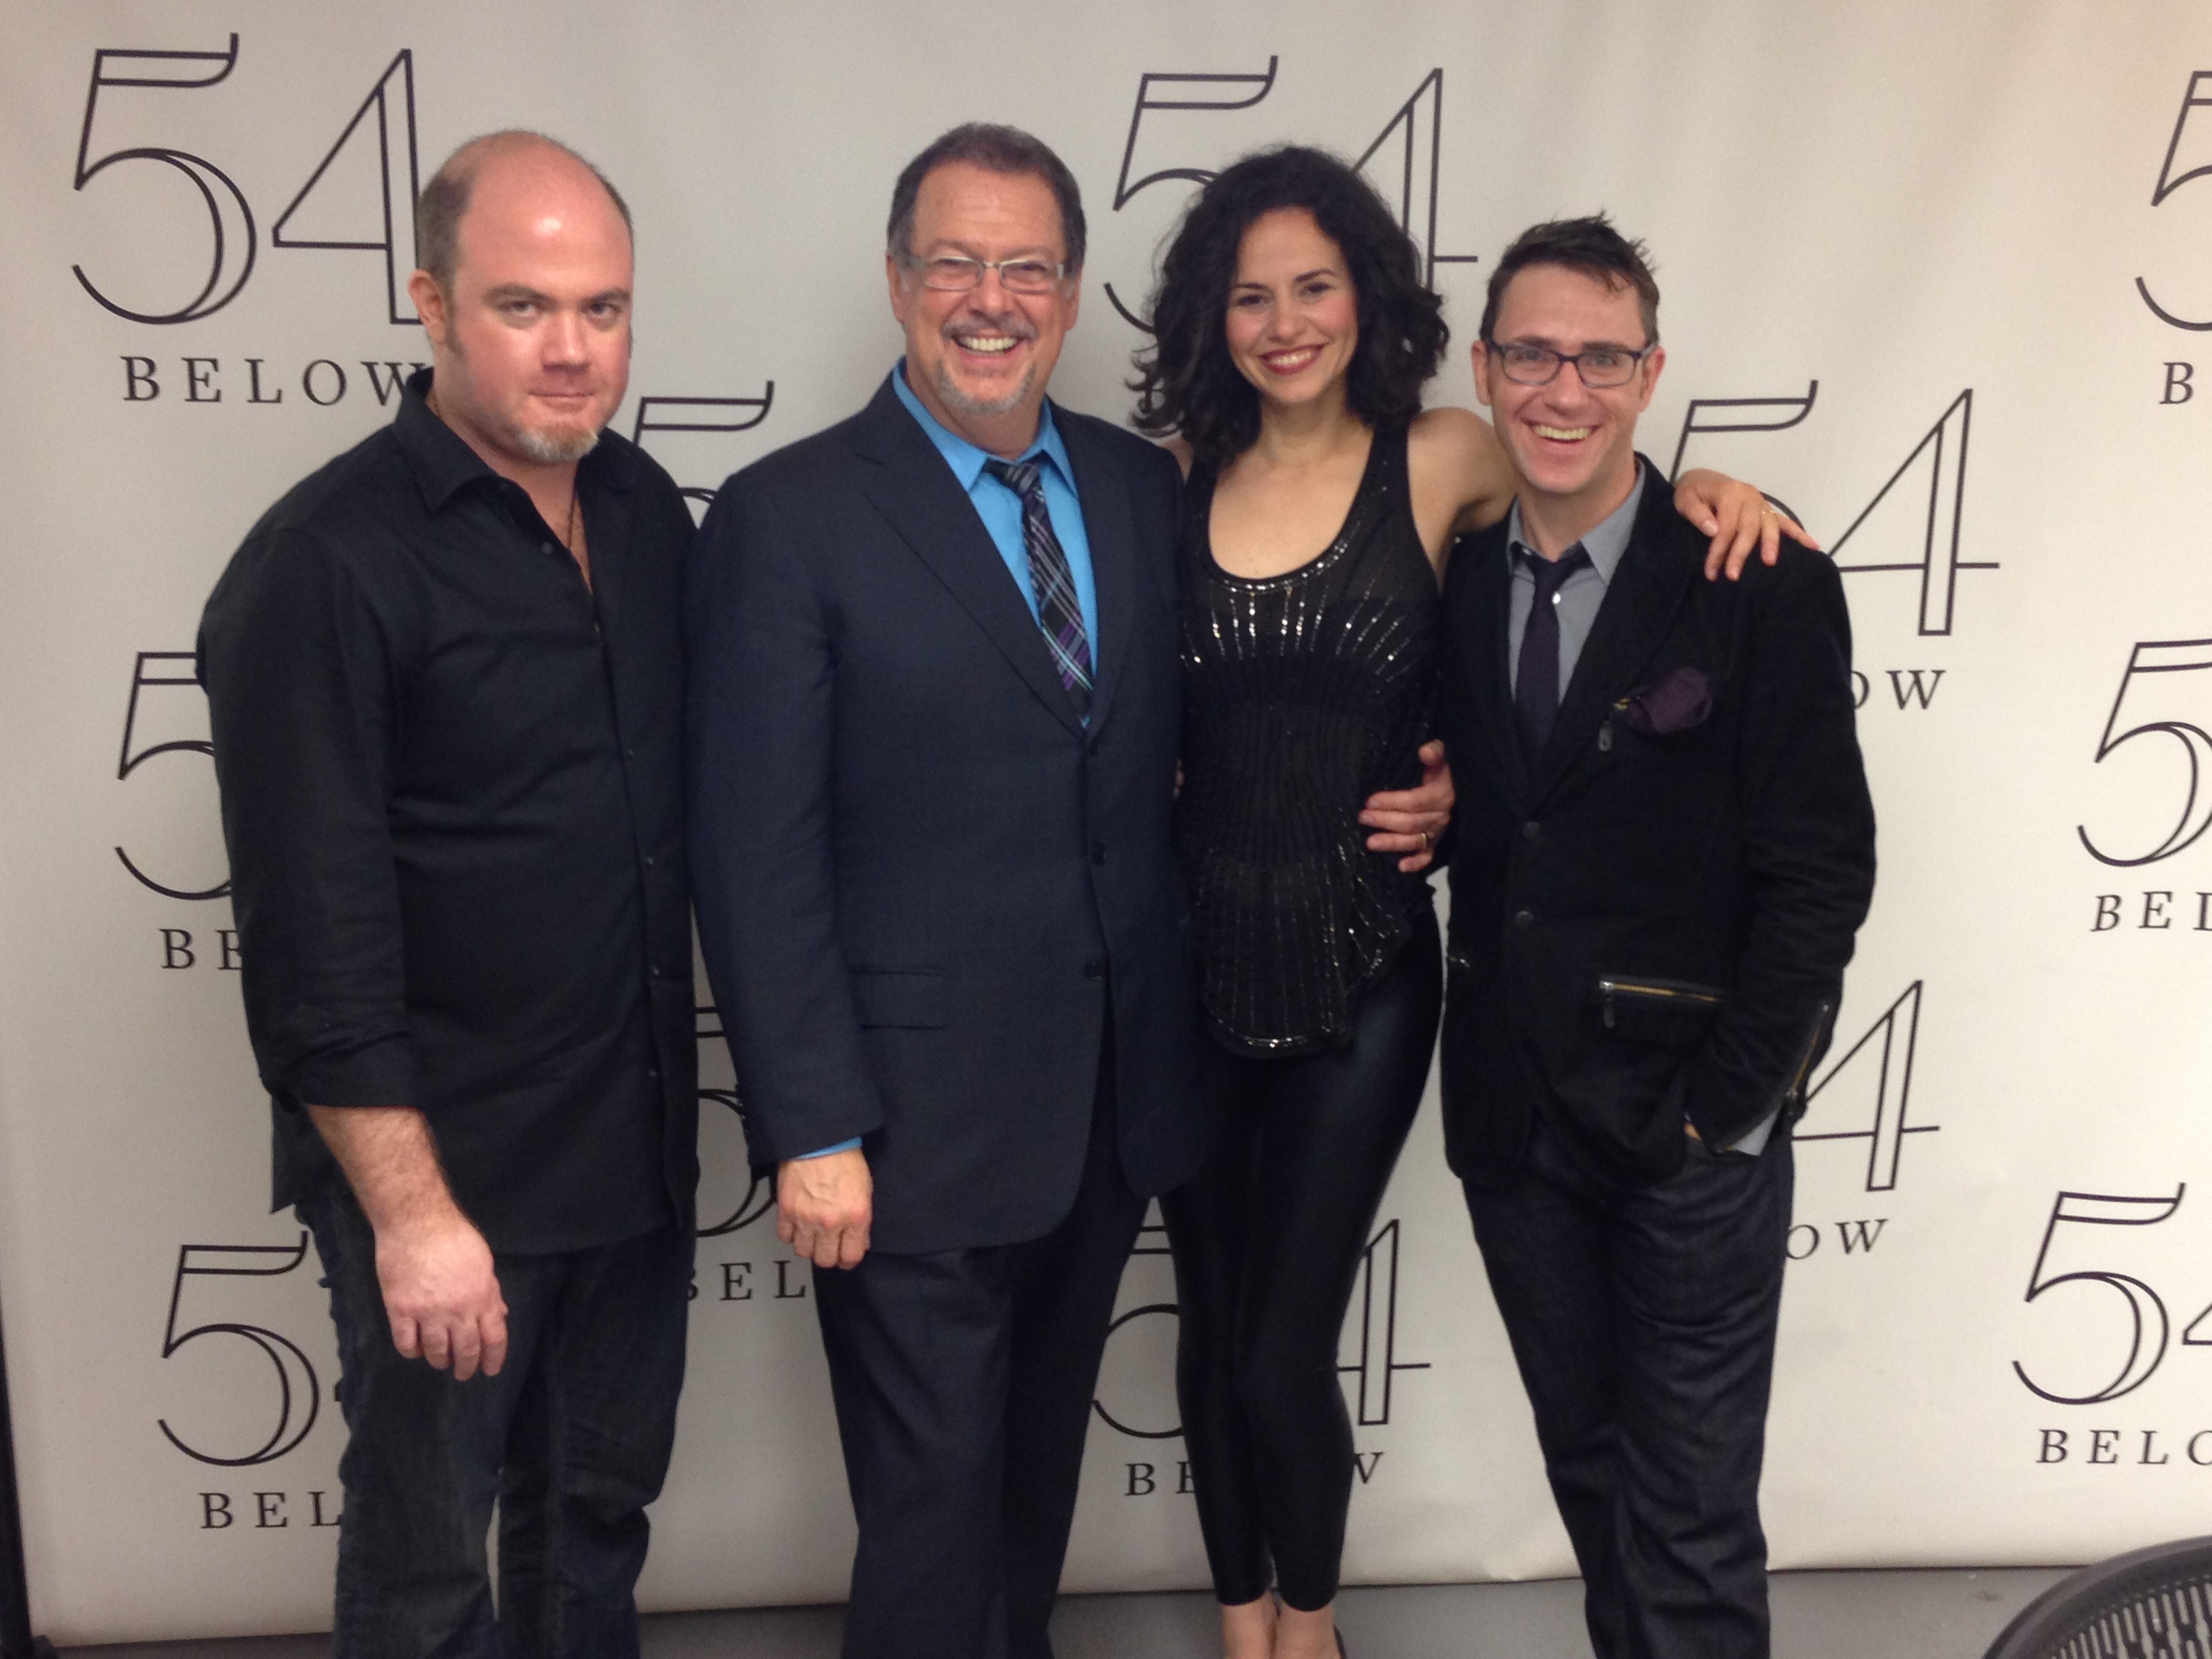 Mandy Gonzalez at 54 Below